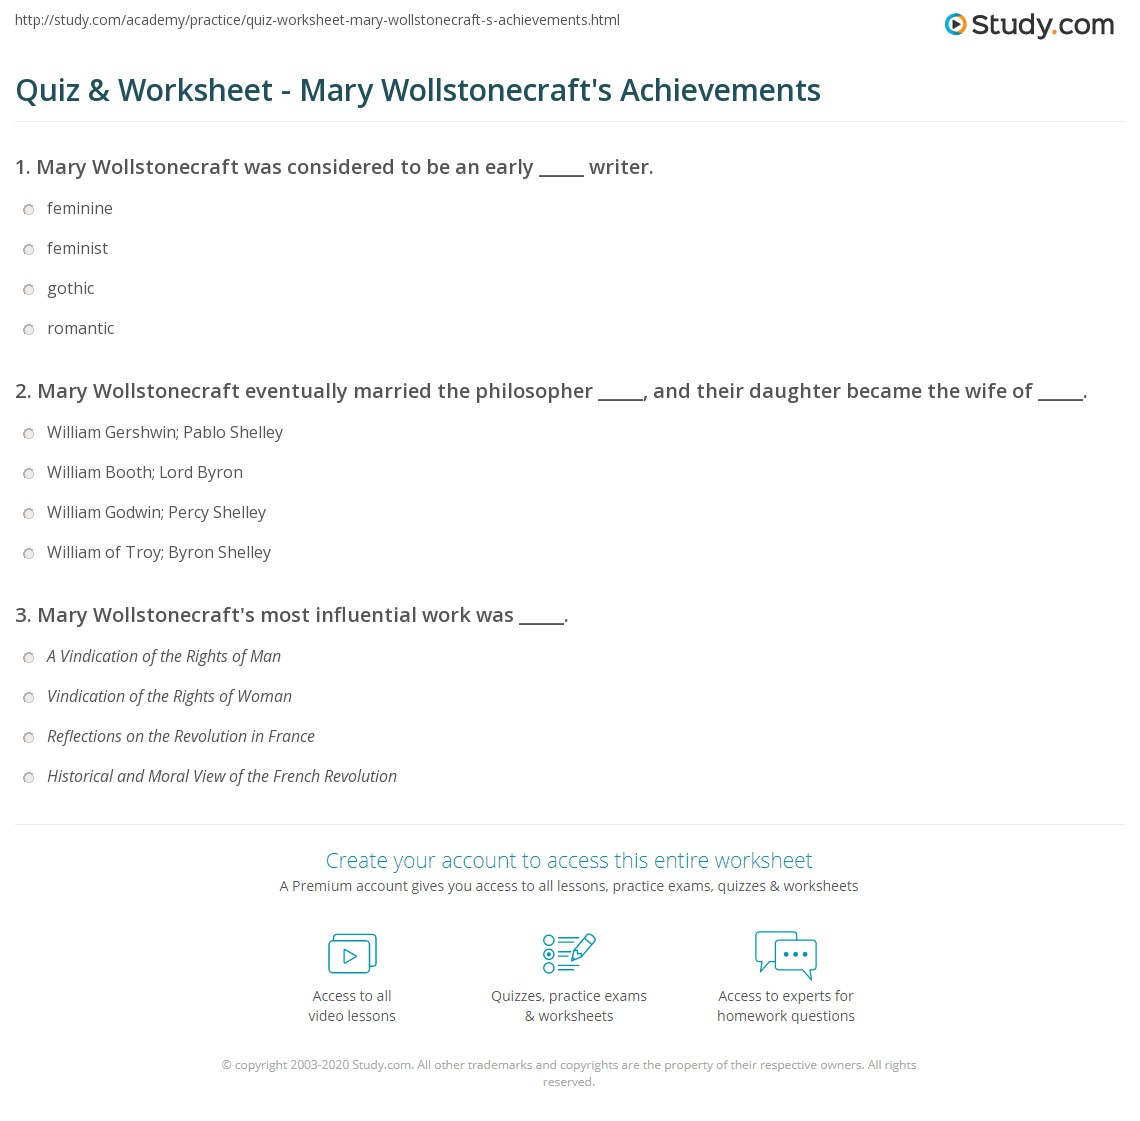 quiz worksheet mary wollstonecraft s achievements com print mary wollstonecraft works achievements influence worksheet